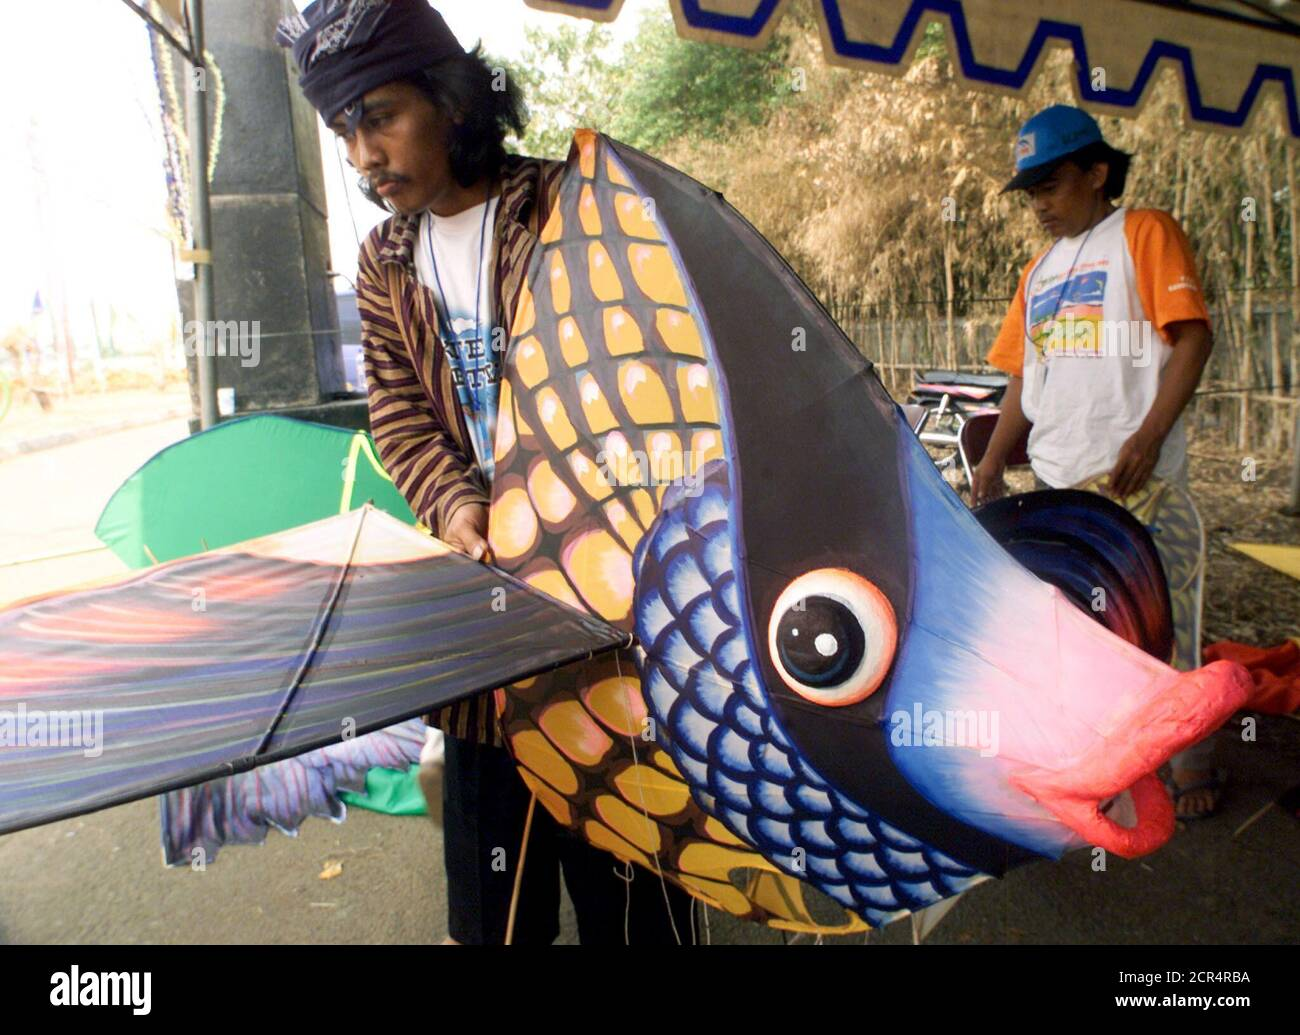 Indonesian men prepare a kite shaped like a fish for a kite festival in Jakarta on June 28, 2002. The men are among dozens of international participants at Jakarta's international kite festival. Eleven countries and dozens of provinces in Indonesia will take part in the three-day festival. REUTERS/Supri  DW/CP Stock Photo